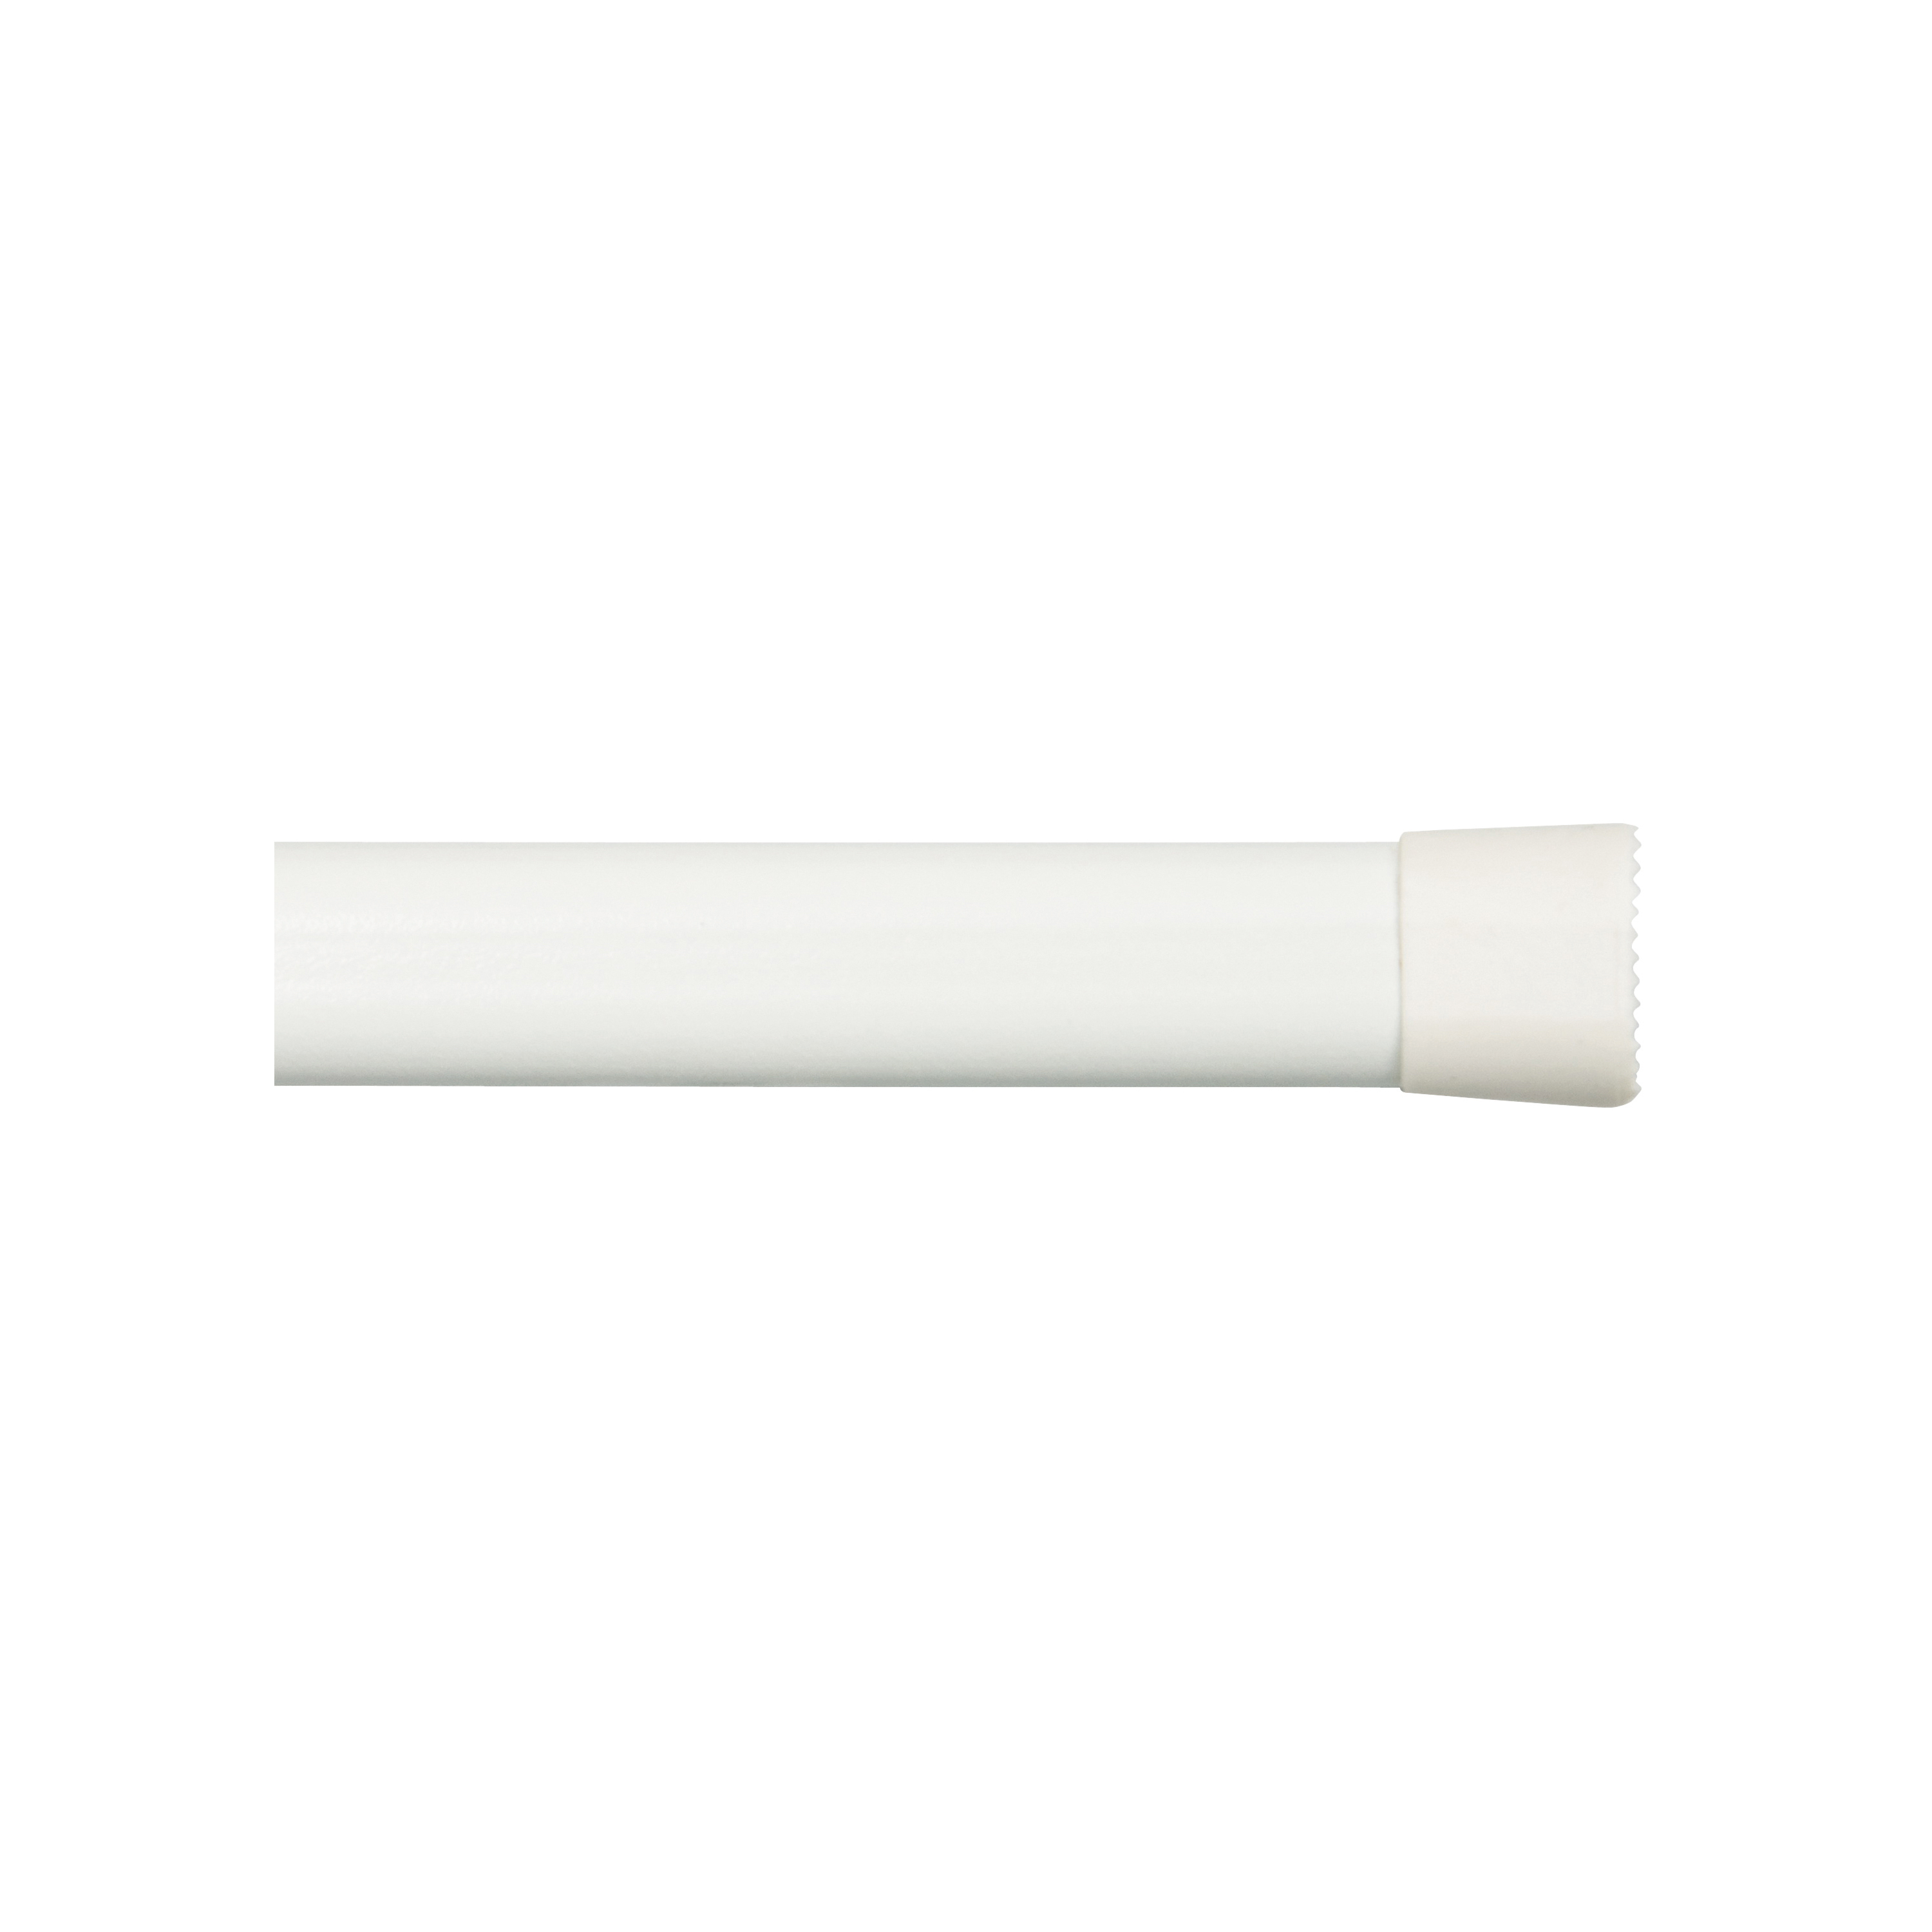 Picture of Kenney KN618 Spring Tension Rod, 5/8 in Dia, 48 to 84 in L, Metal, White